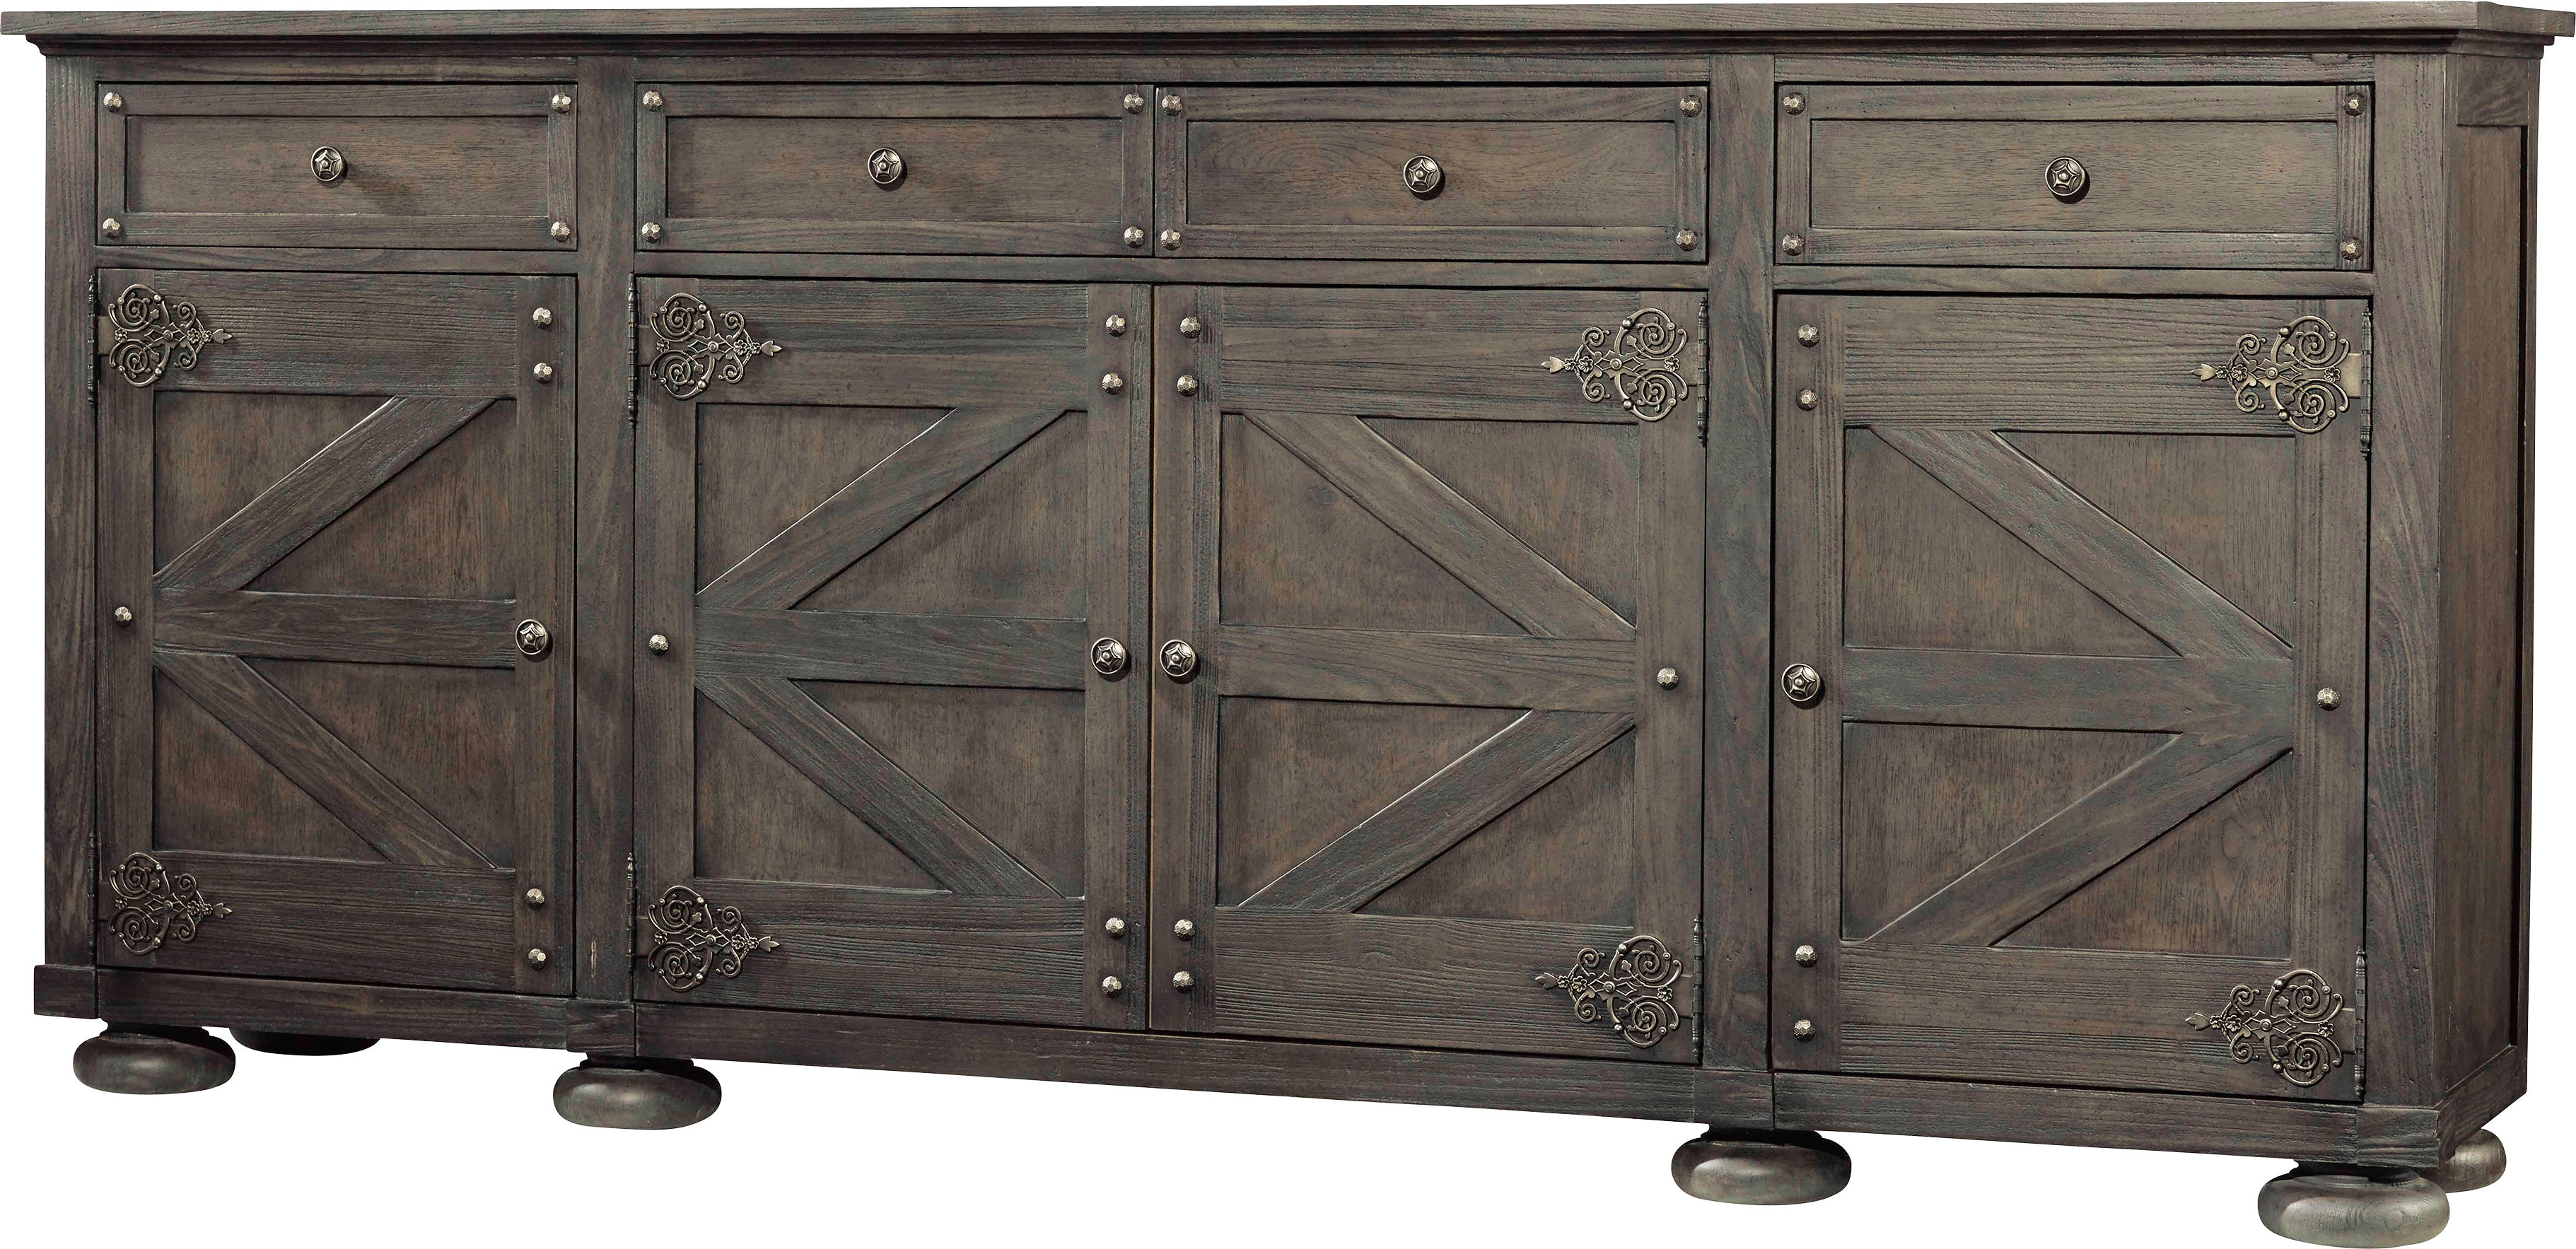 Industrial Sideboard / Credenza Sideboards & Buffets You'll In Alegre Sideboards (View 9 of 20)